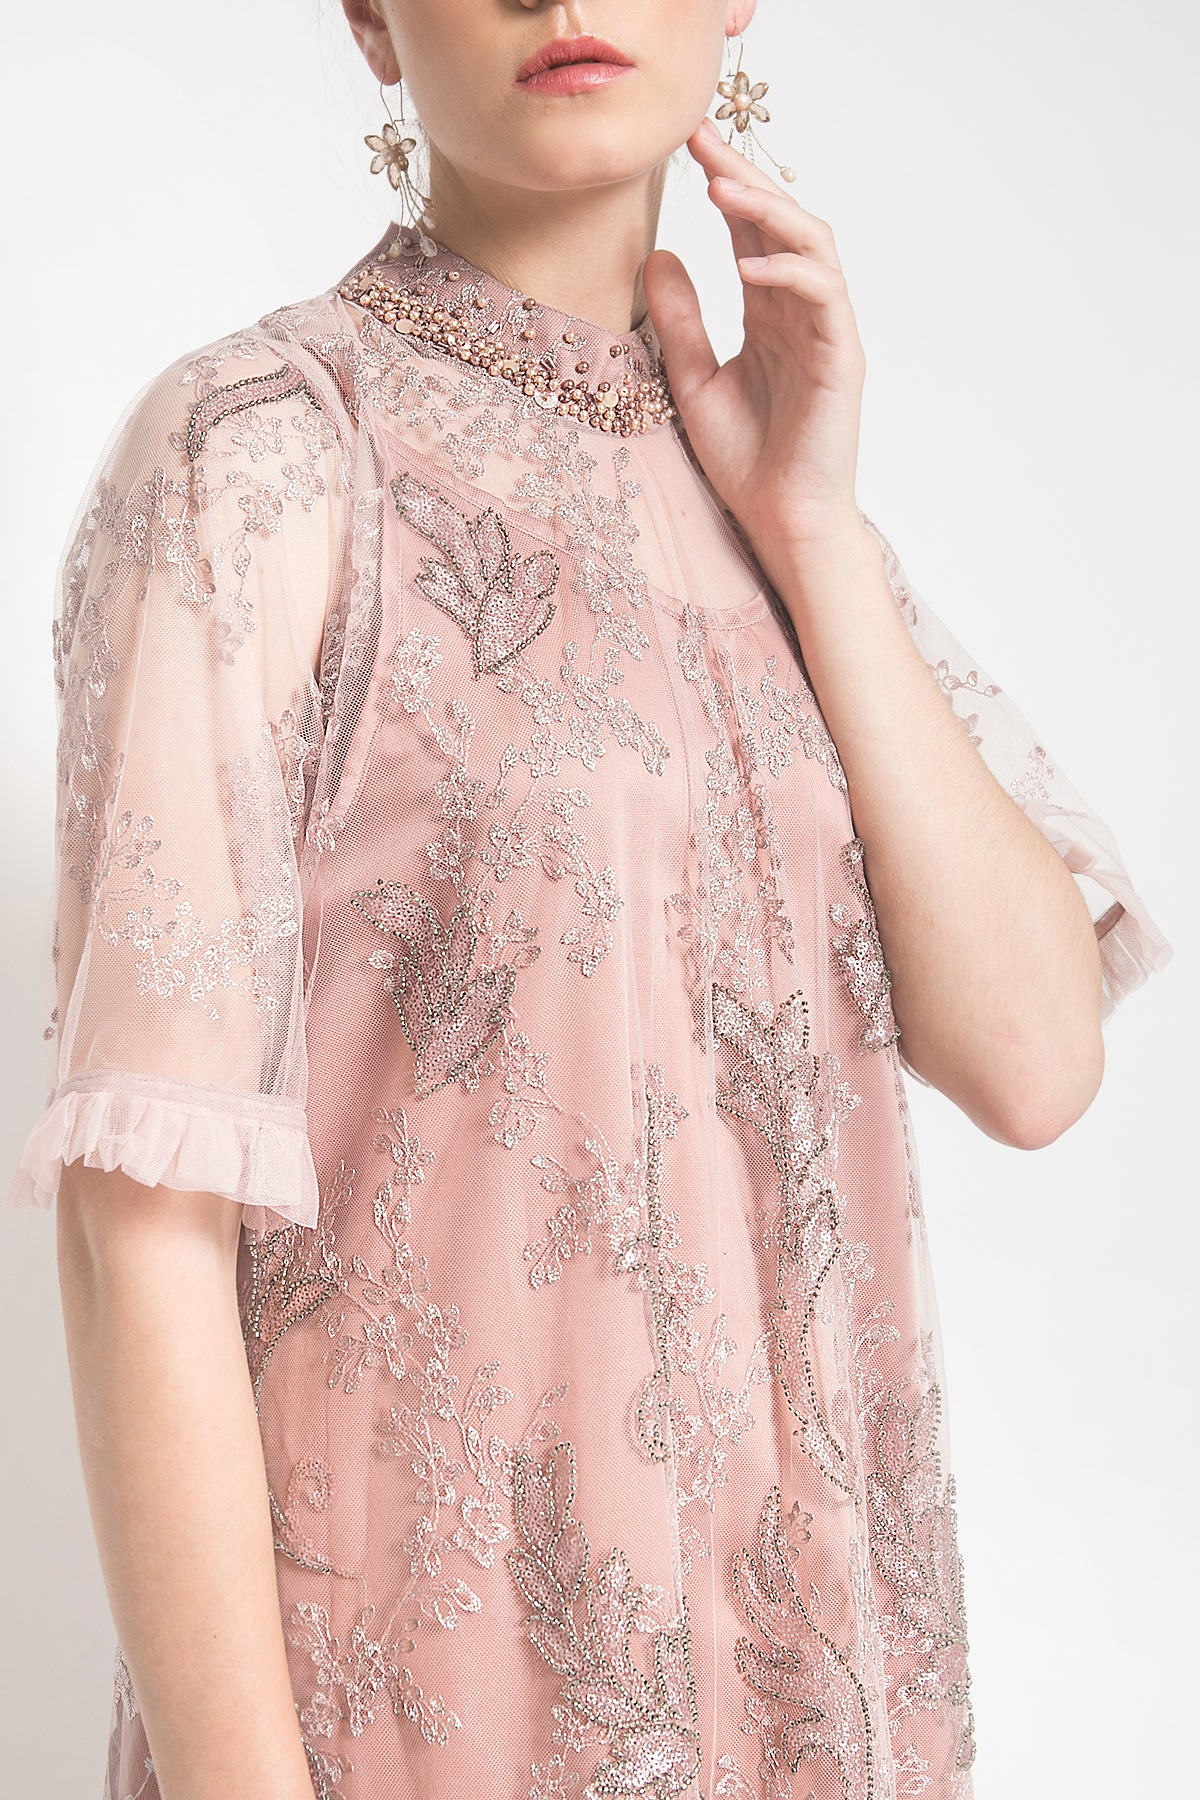 Kalula Dress in Dusty Pink